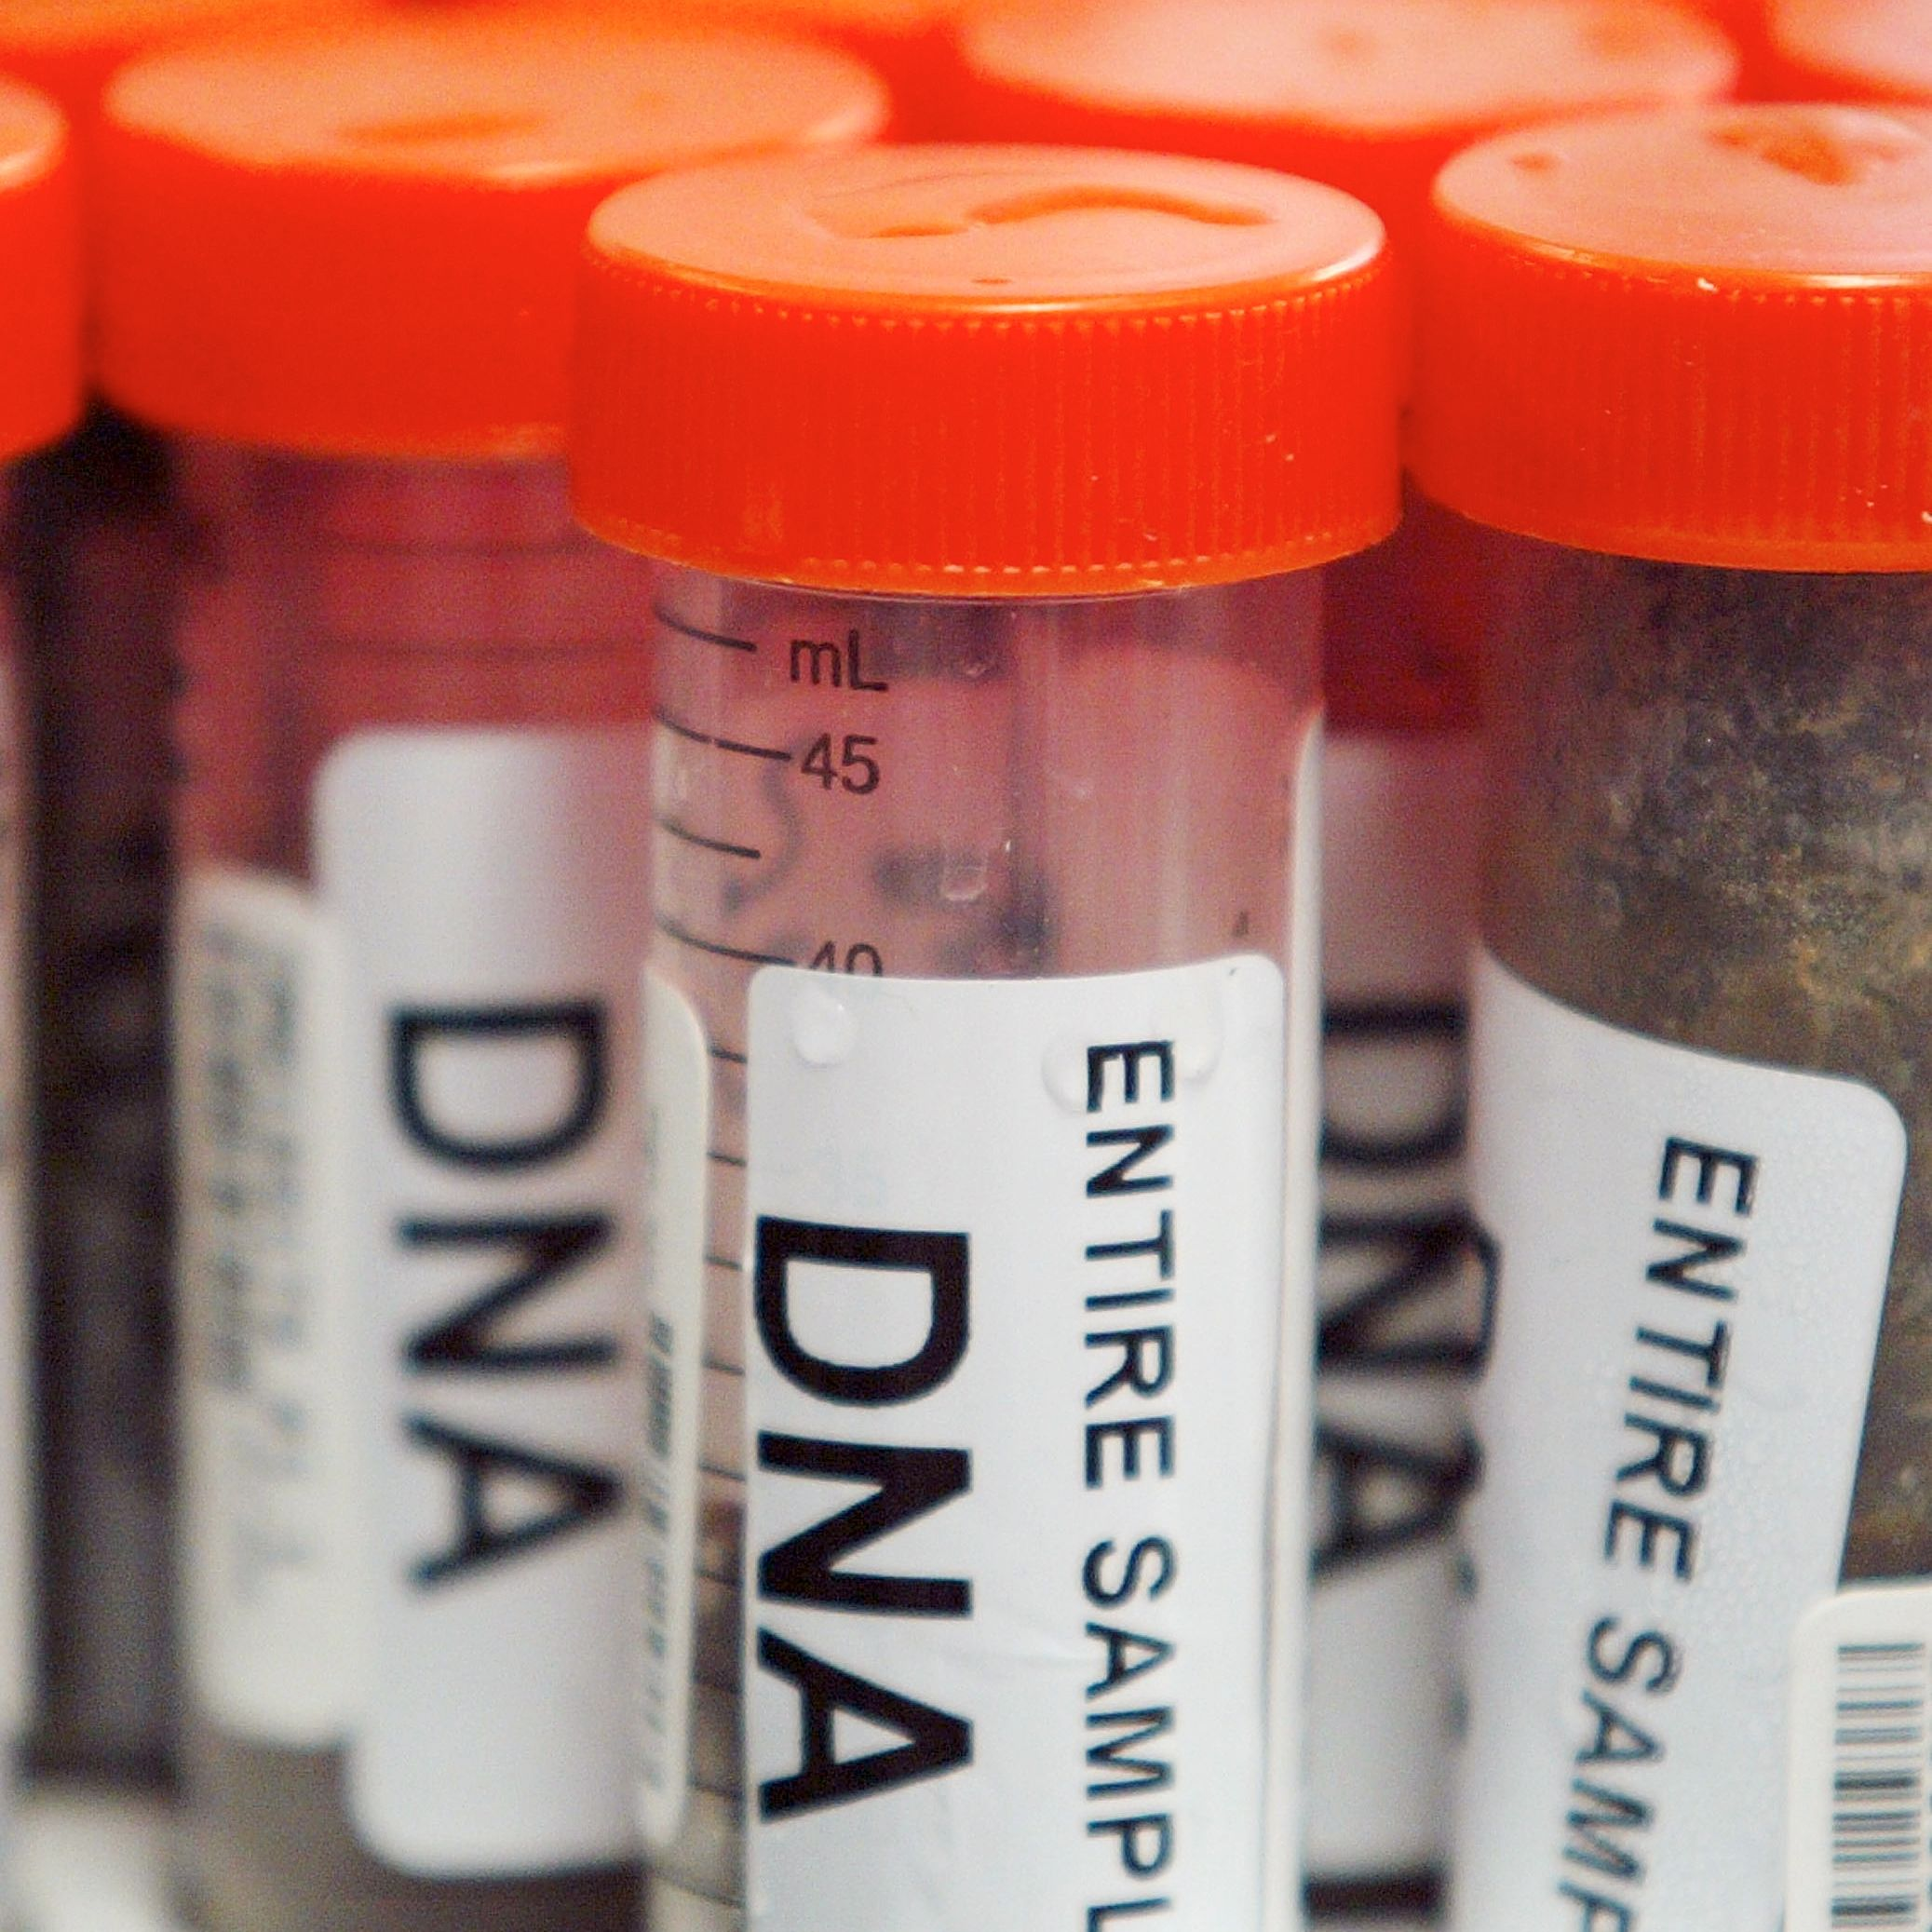 DNA: Balancing privacy and public safety